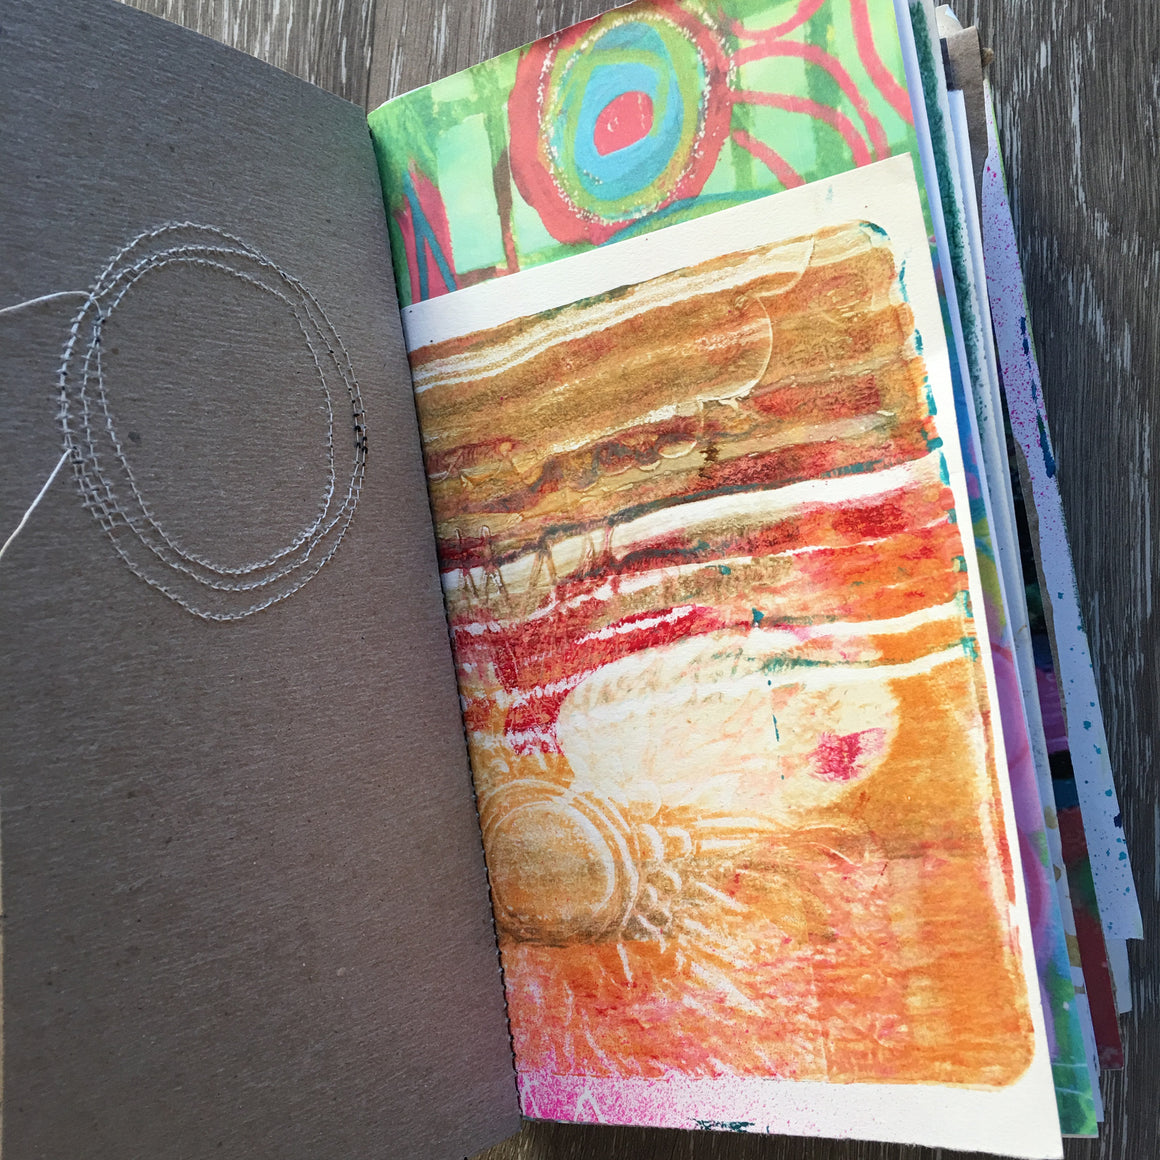 {LOVE voyage} FREE spirit handmade art journal by traci bautista